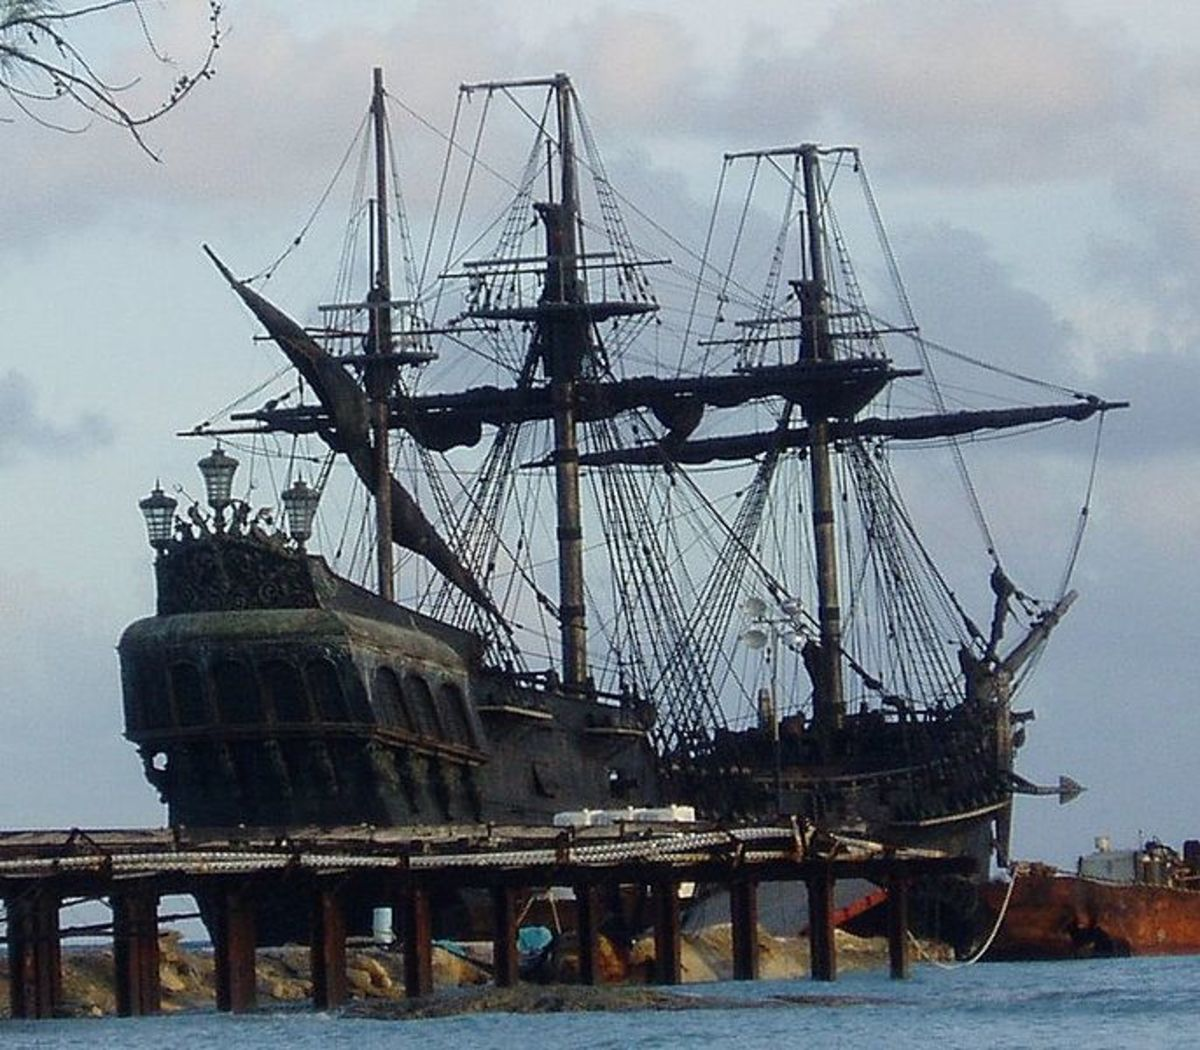 Black Pearl Pirate Ship on location